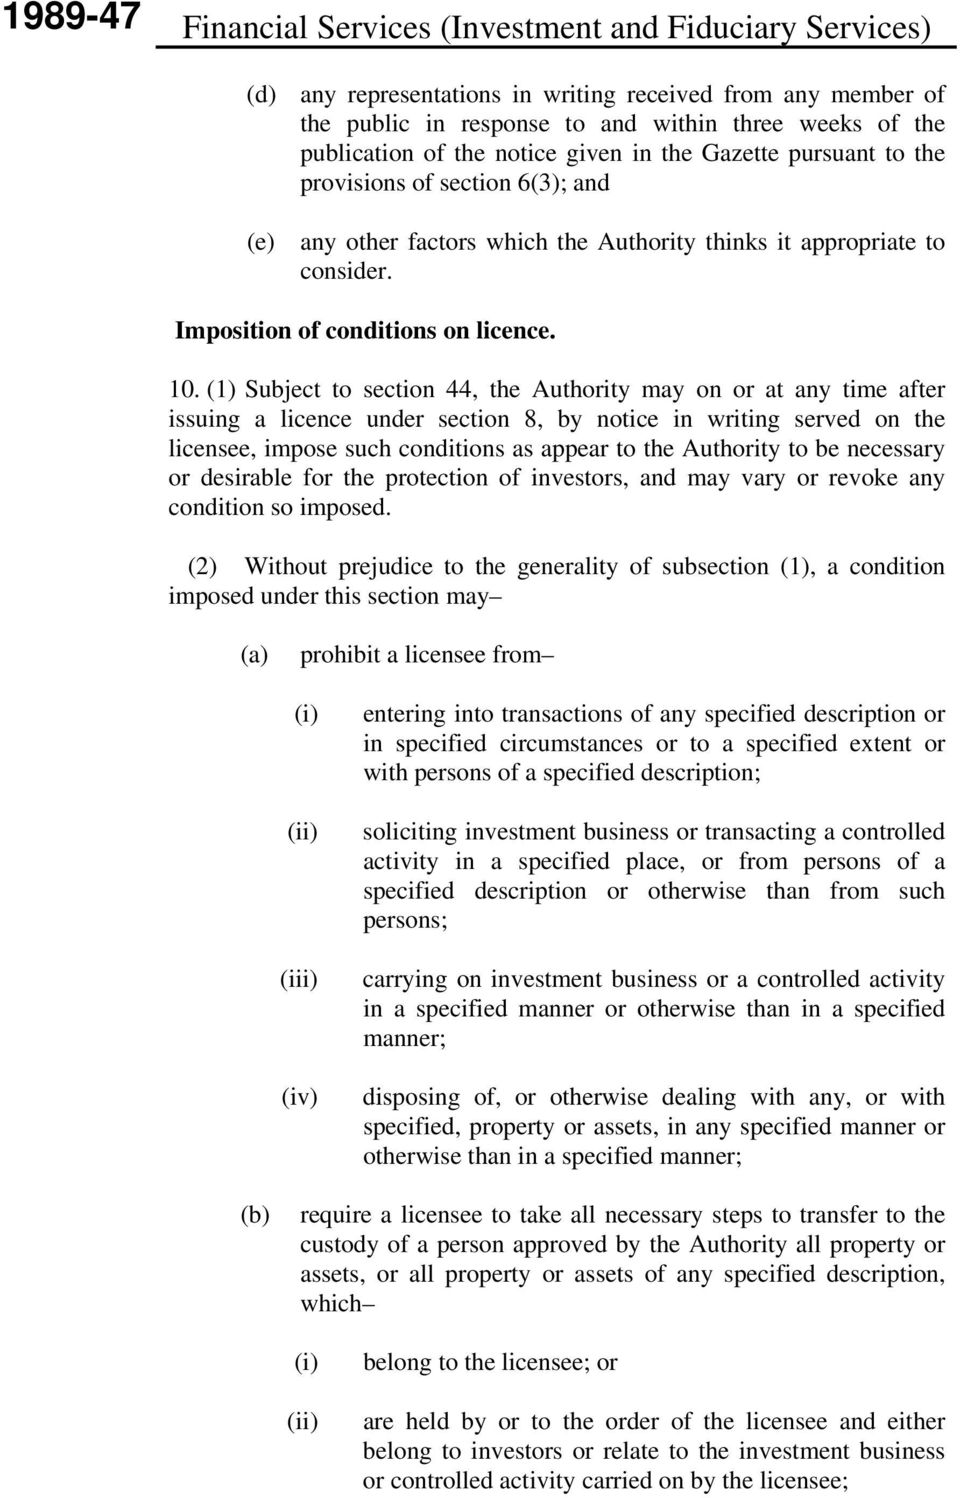 (1) Subject to section 44, the Authority may on or at any time after issuing a licence under section 8, by notice in writing served on the licensee, impose such conditions as appear to the Authority